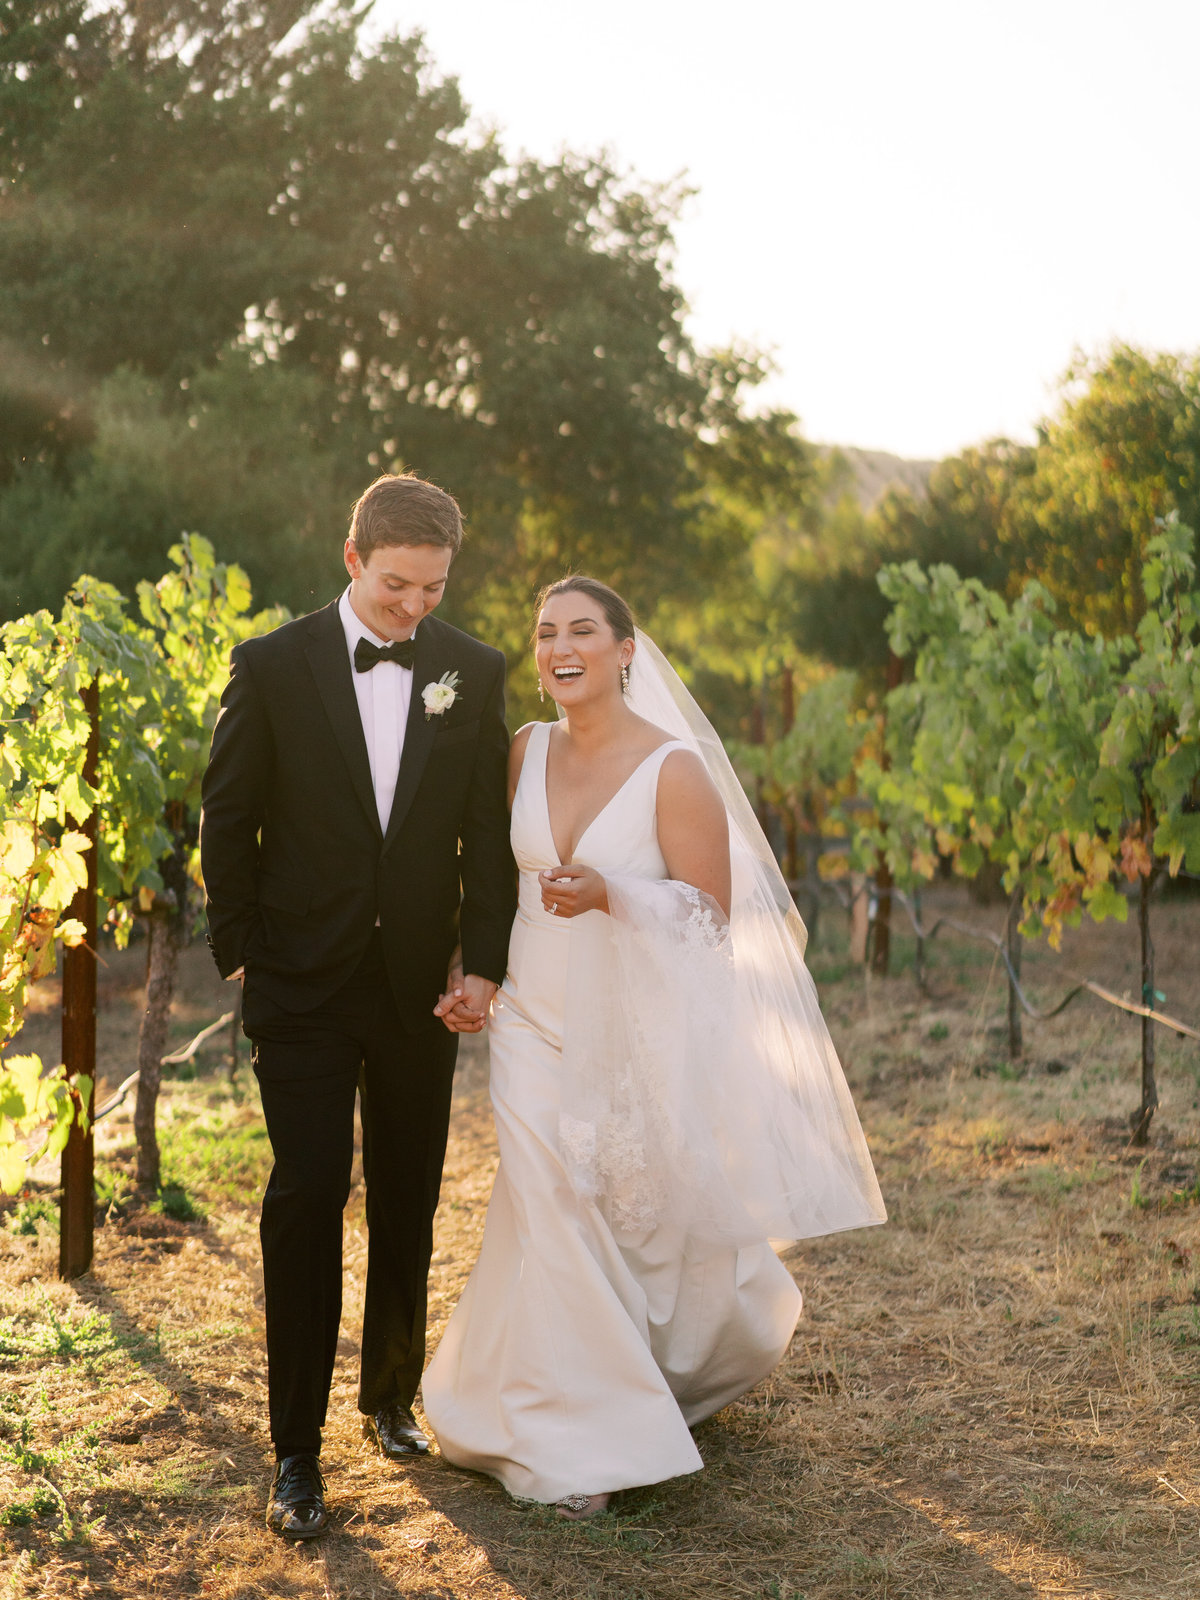 Kelsey + Alex Sonoma Buena Vista Winery Wedding - Cassie Valente Photography 0211